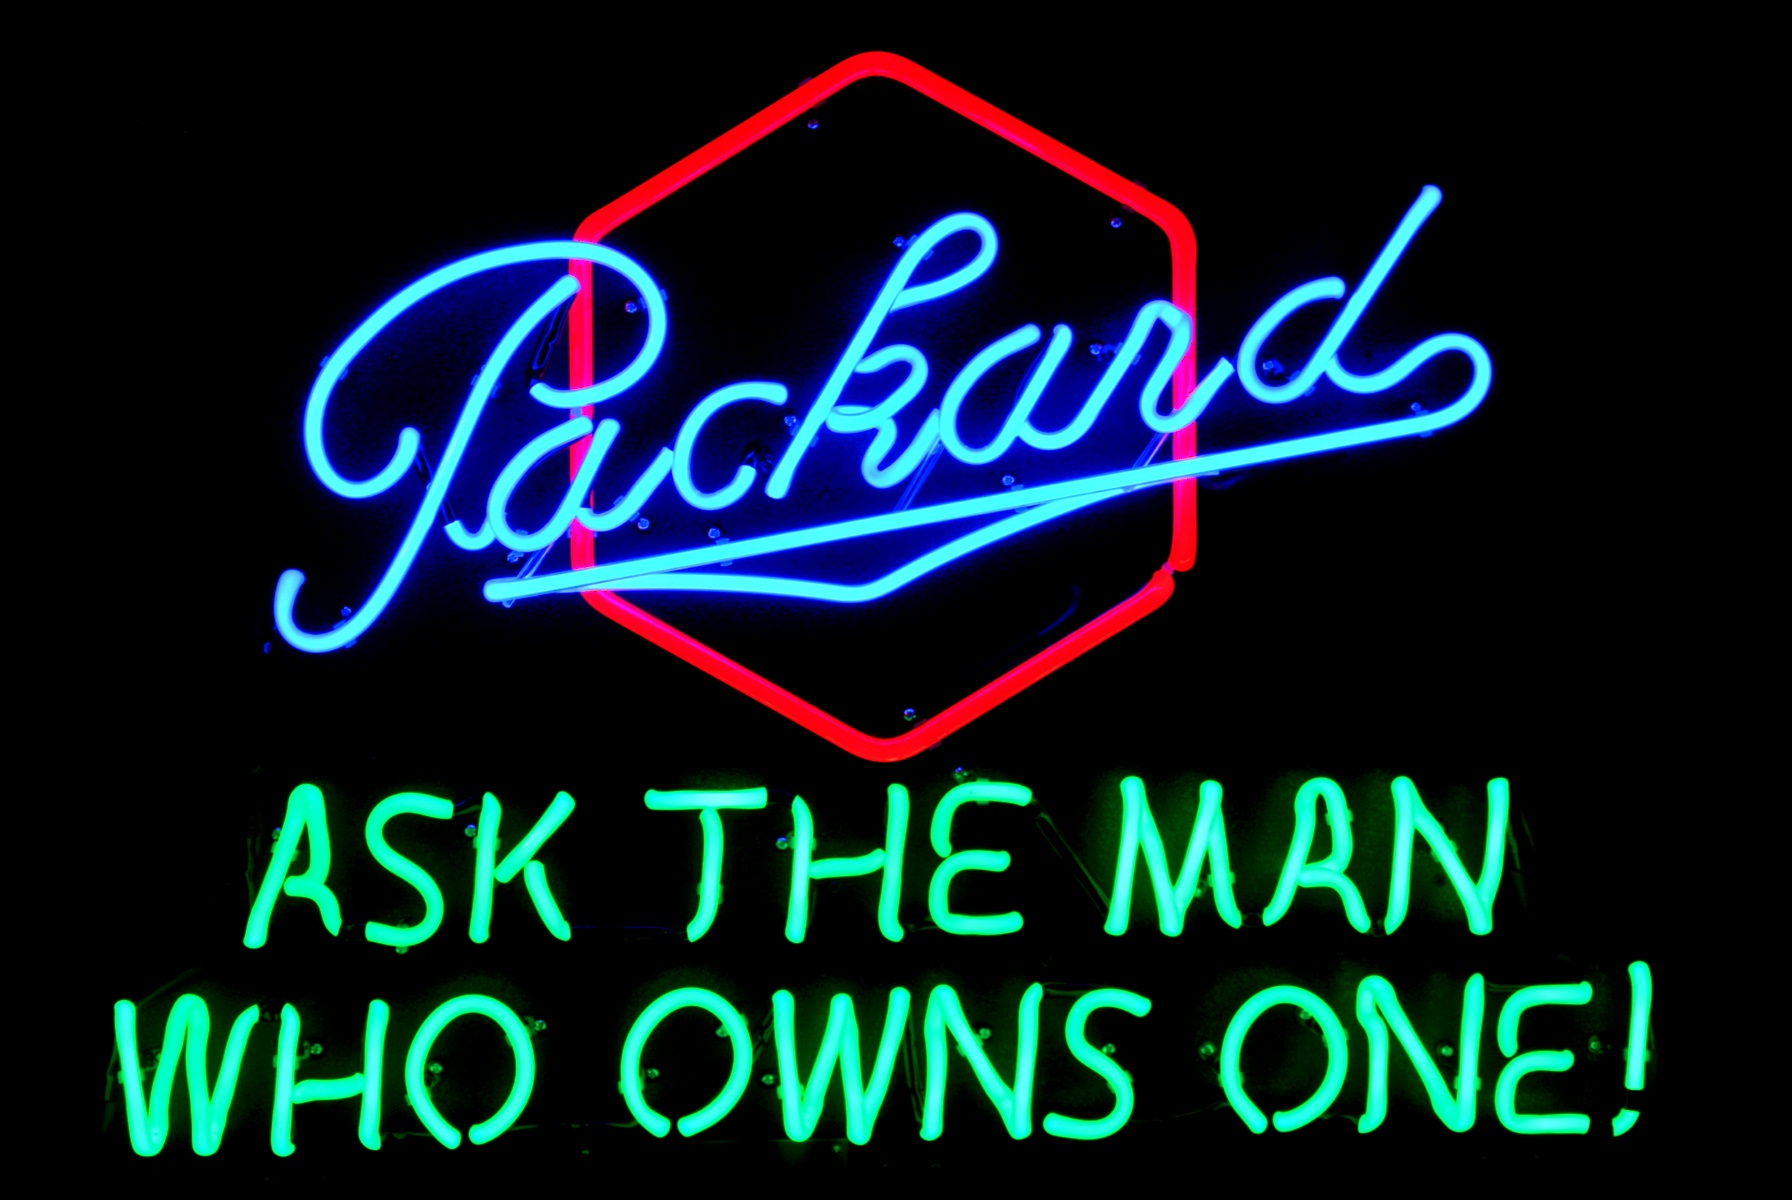 Packard ASK THE MAN WHO OWNS ONE! - NEON SIGN by John Barton - BartonNeonMagic.com